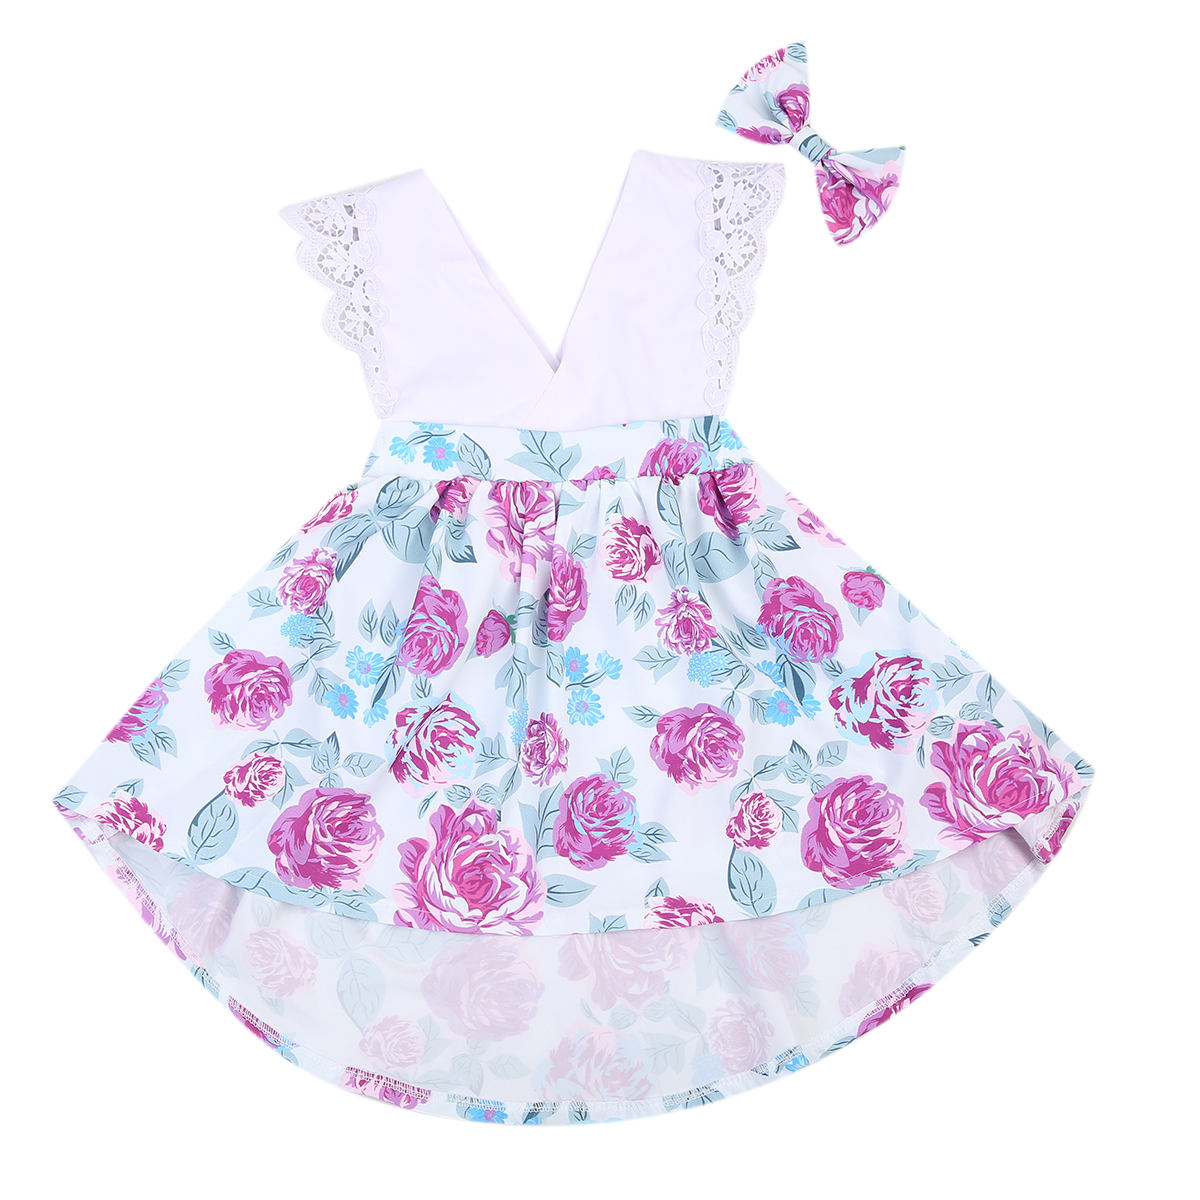 Find great deals on eBay for matching infant toddler dresses. Shop with confidence. Skip to main content. eBay: Shop by category. Summer Toddler Kids Baby Girls Denim Flower Matching Dress Party Formal Dress. Brand New · Unbranded. $ From .